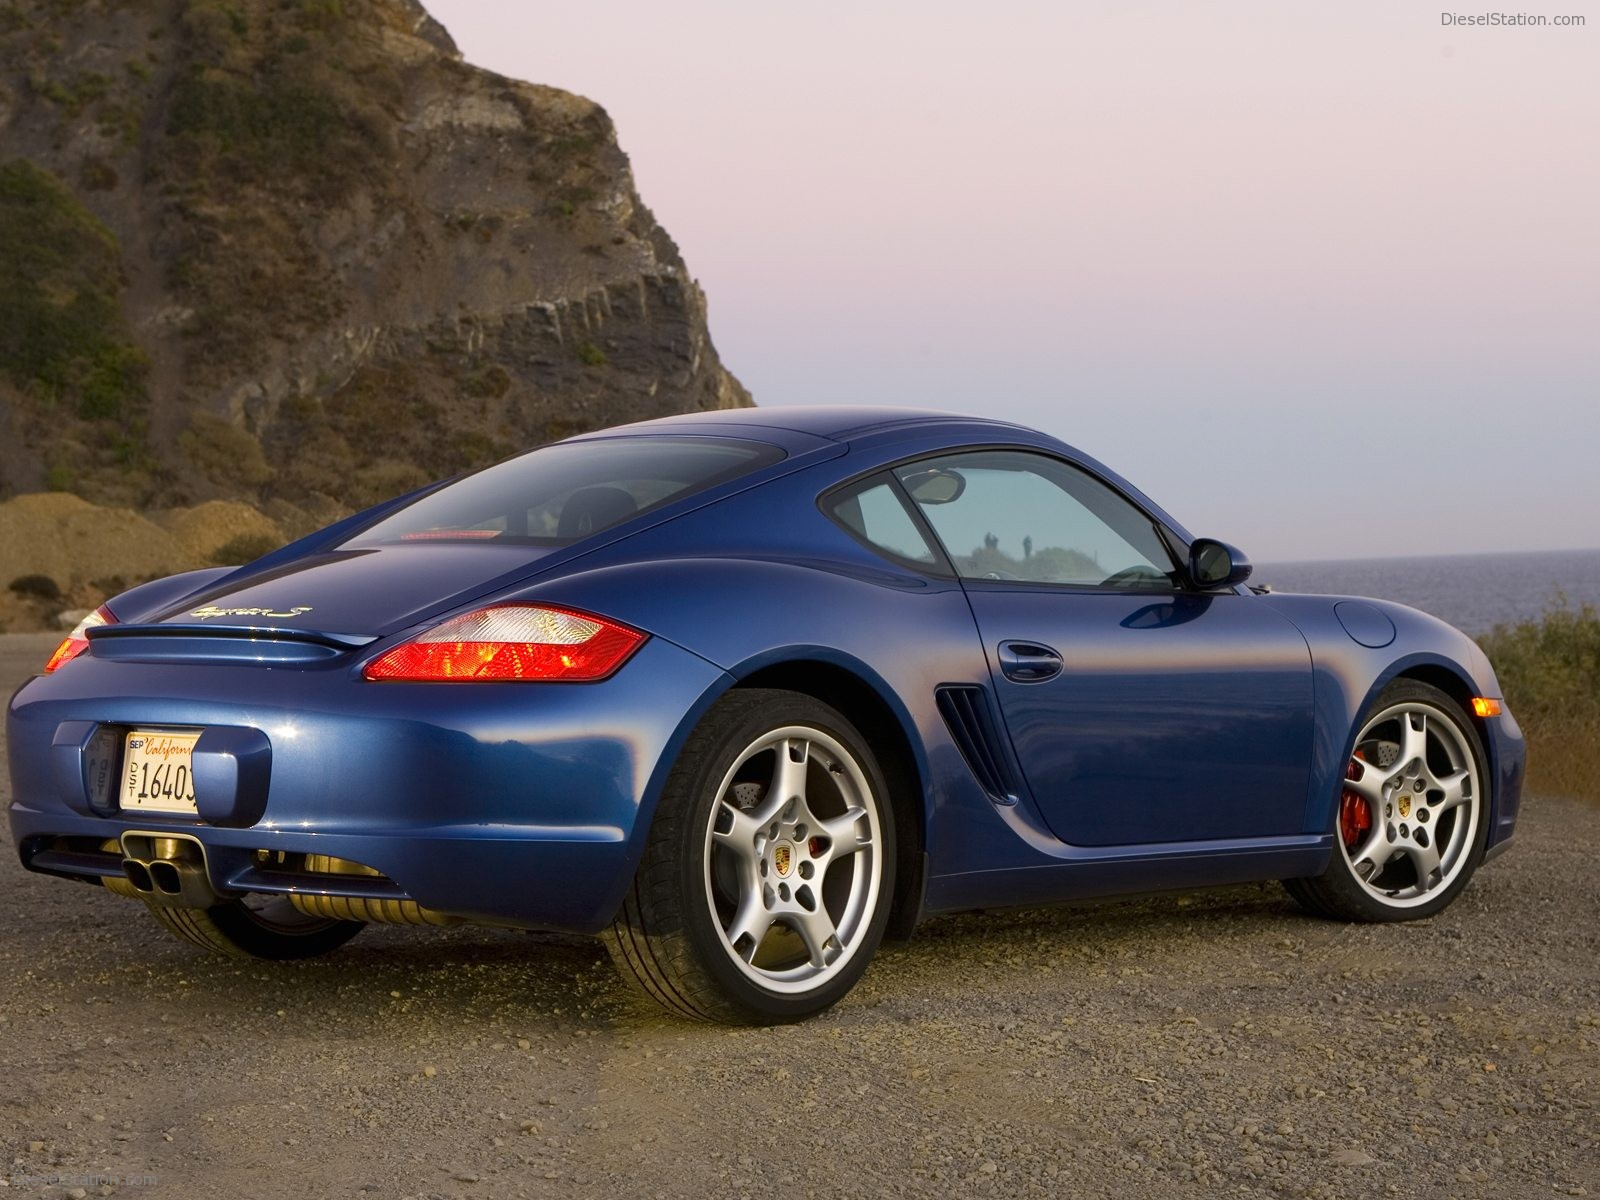 PORSCHE CAYMAN S 2008 EXOTIC CAR 3